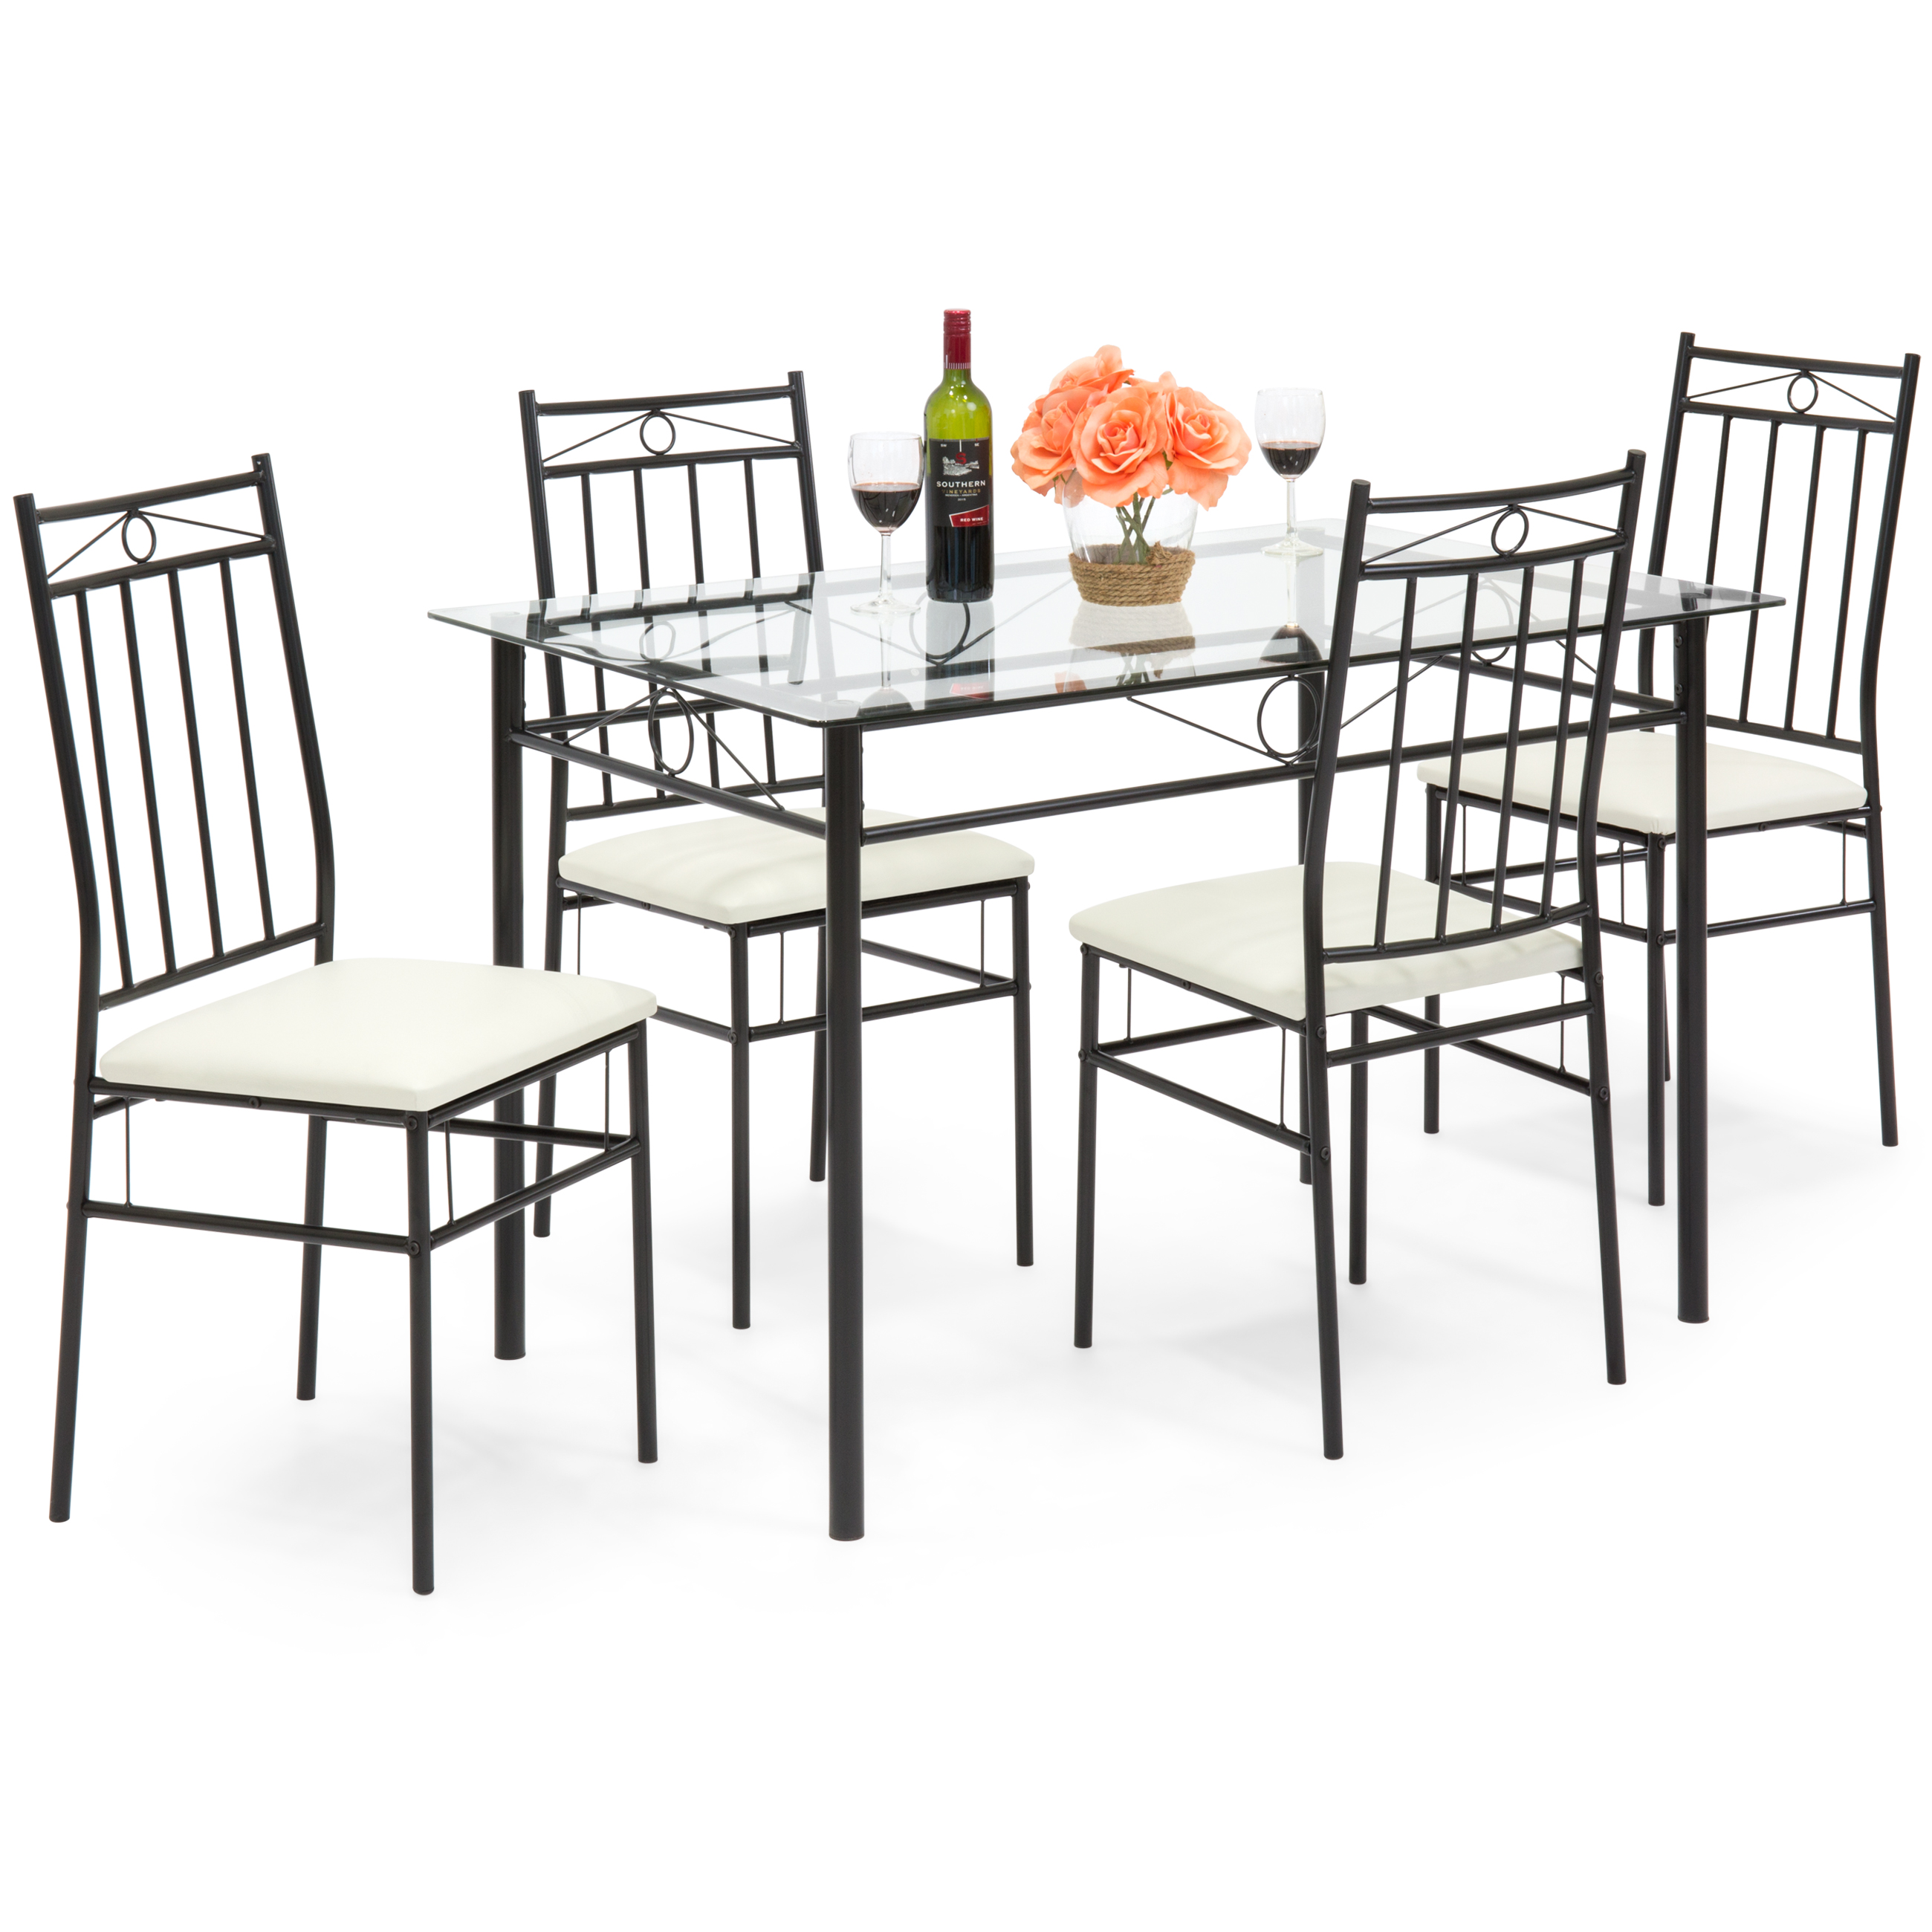 Best Choice Products 5 Piece Glass Table Dining Set W/ Chairs (White)